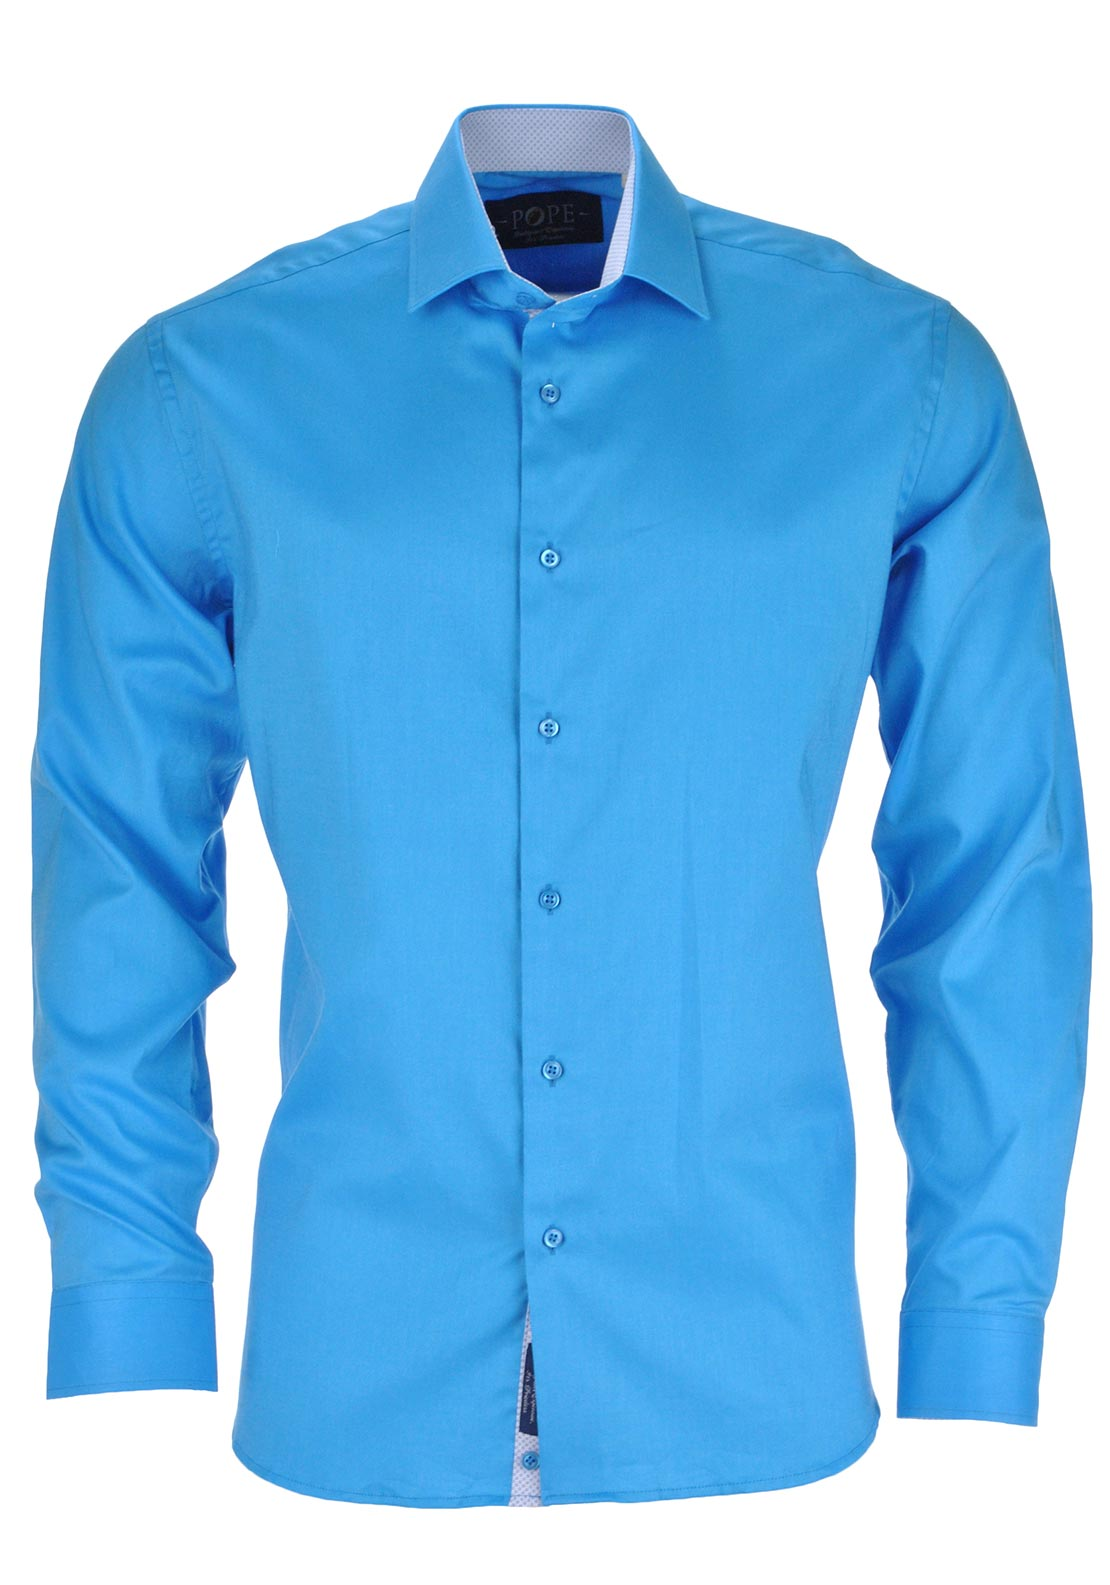 POPE Mens Vienna Long Sleeved Plain Shirt, Turquoise